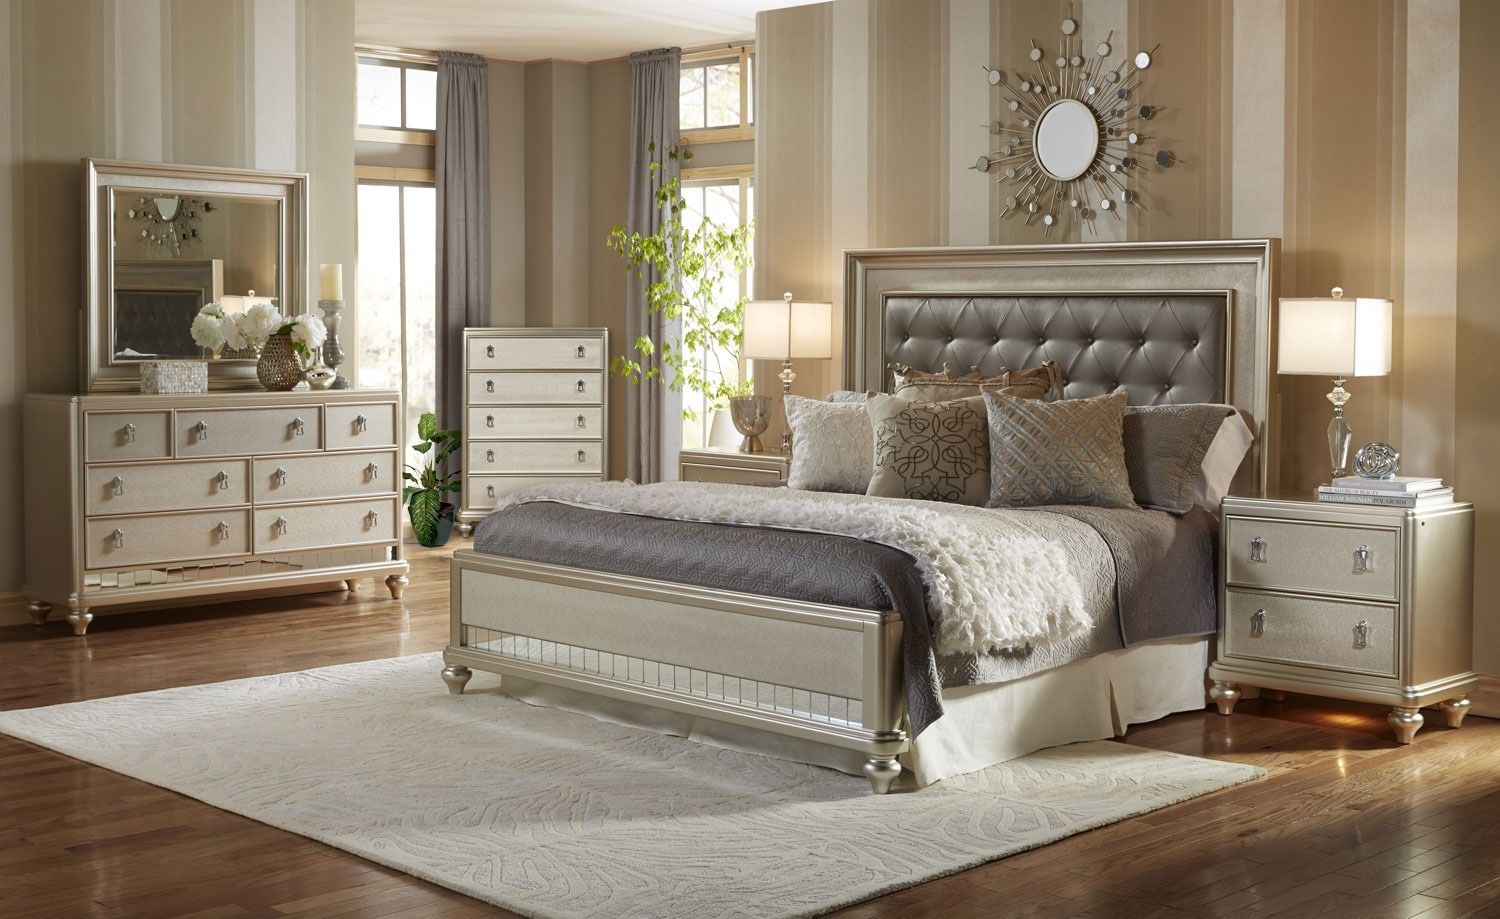 Bedroom Furniture - Diva 8-Piece Queen Bedroom Package